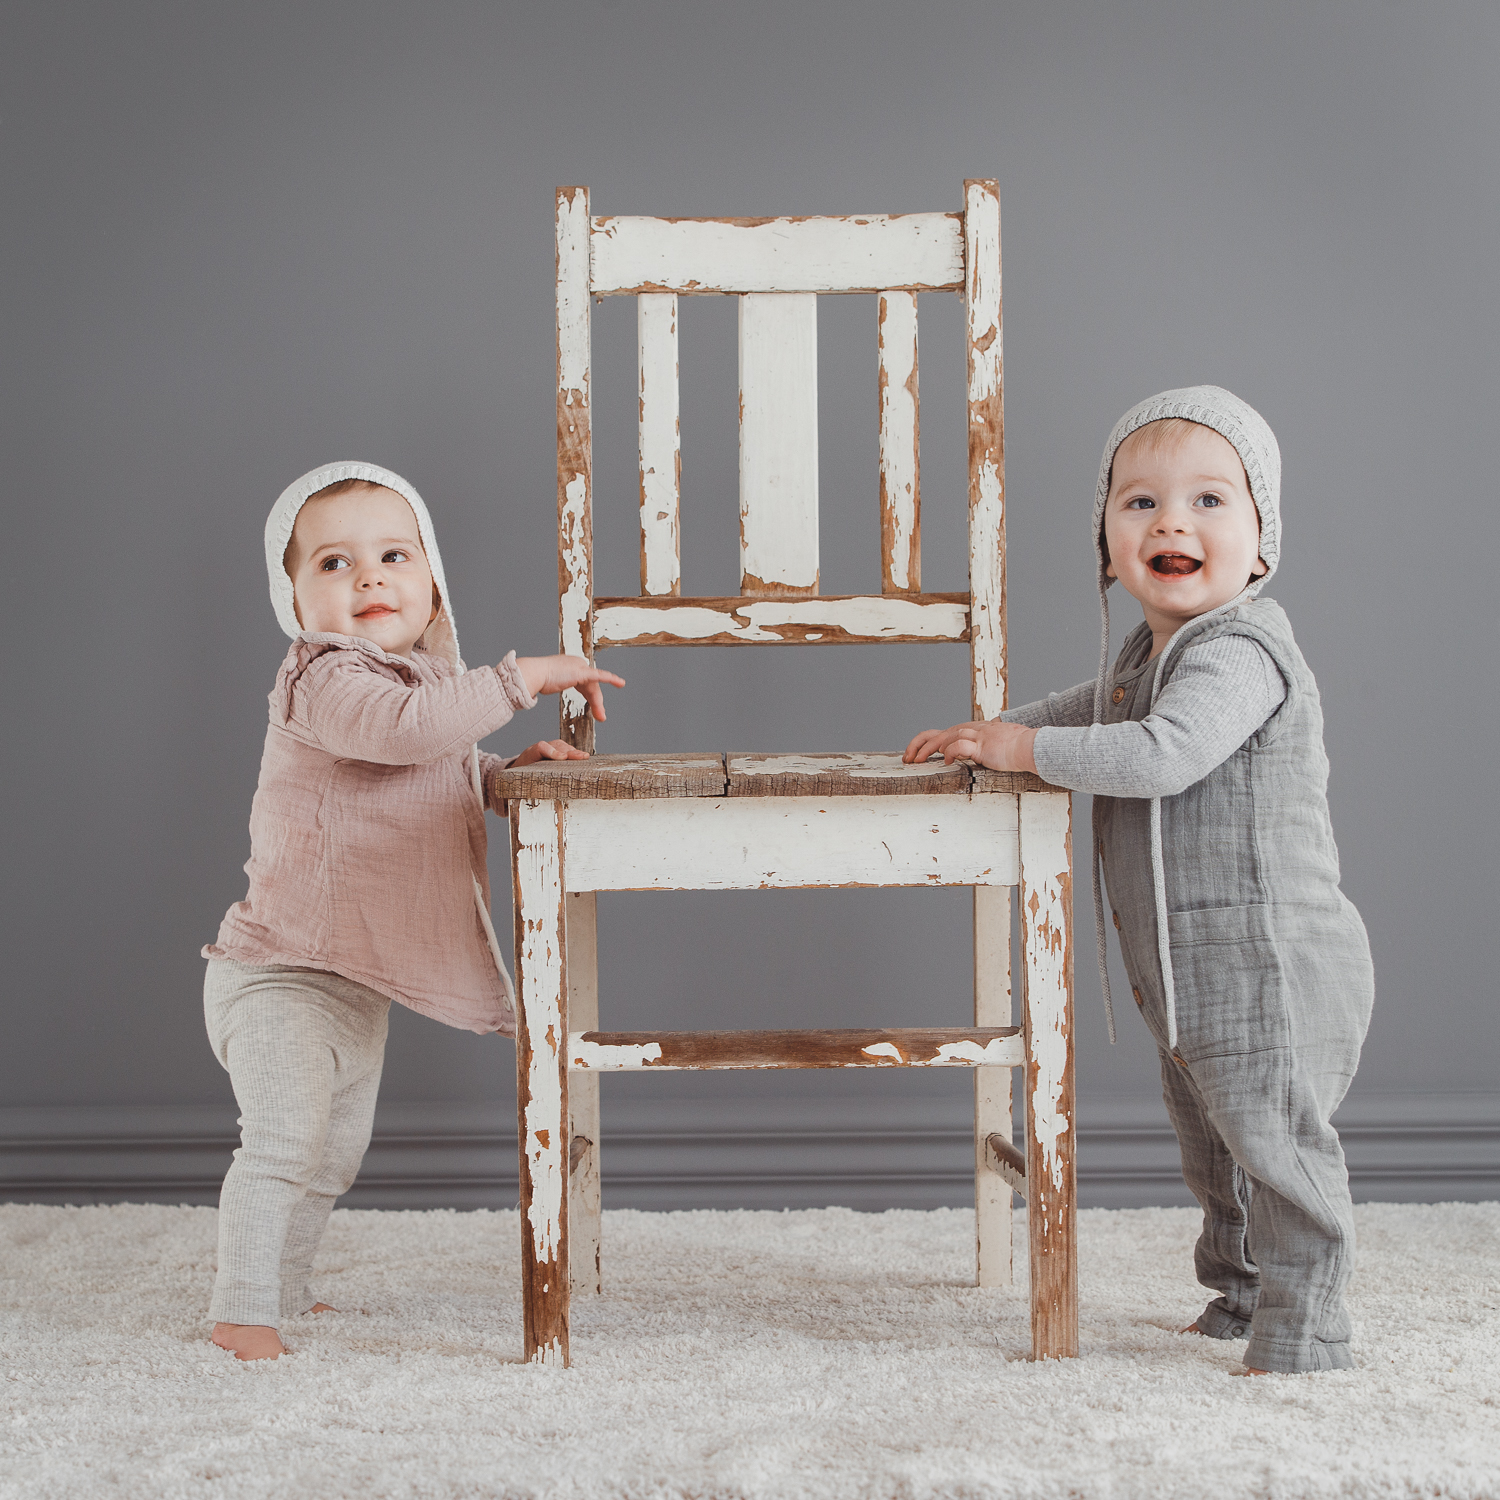 Twins studio shoot twin boy and girl wearing beanies and cute linen outfits to help raise funds for sands.org.au